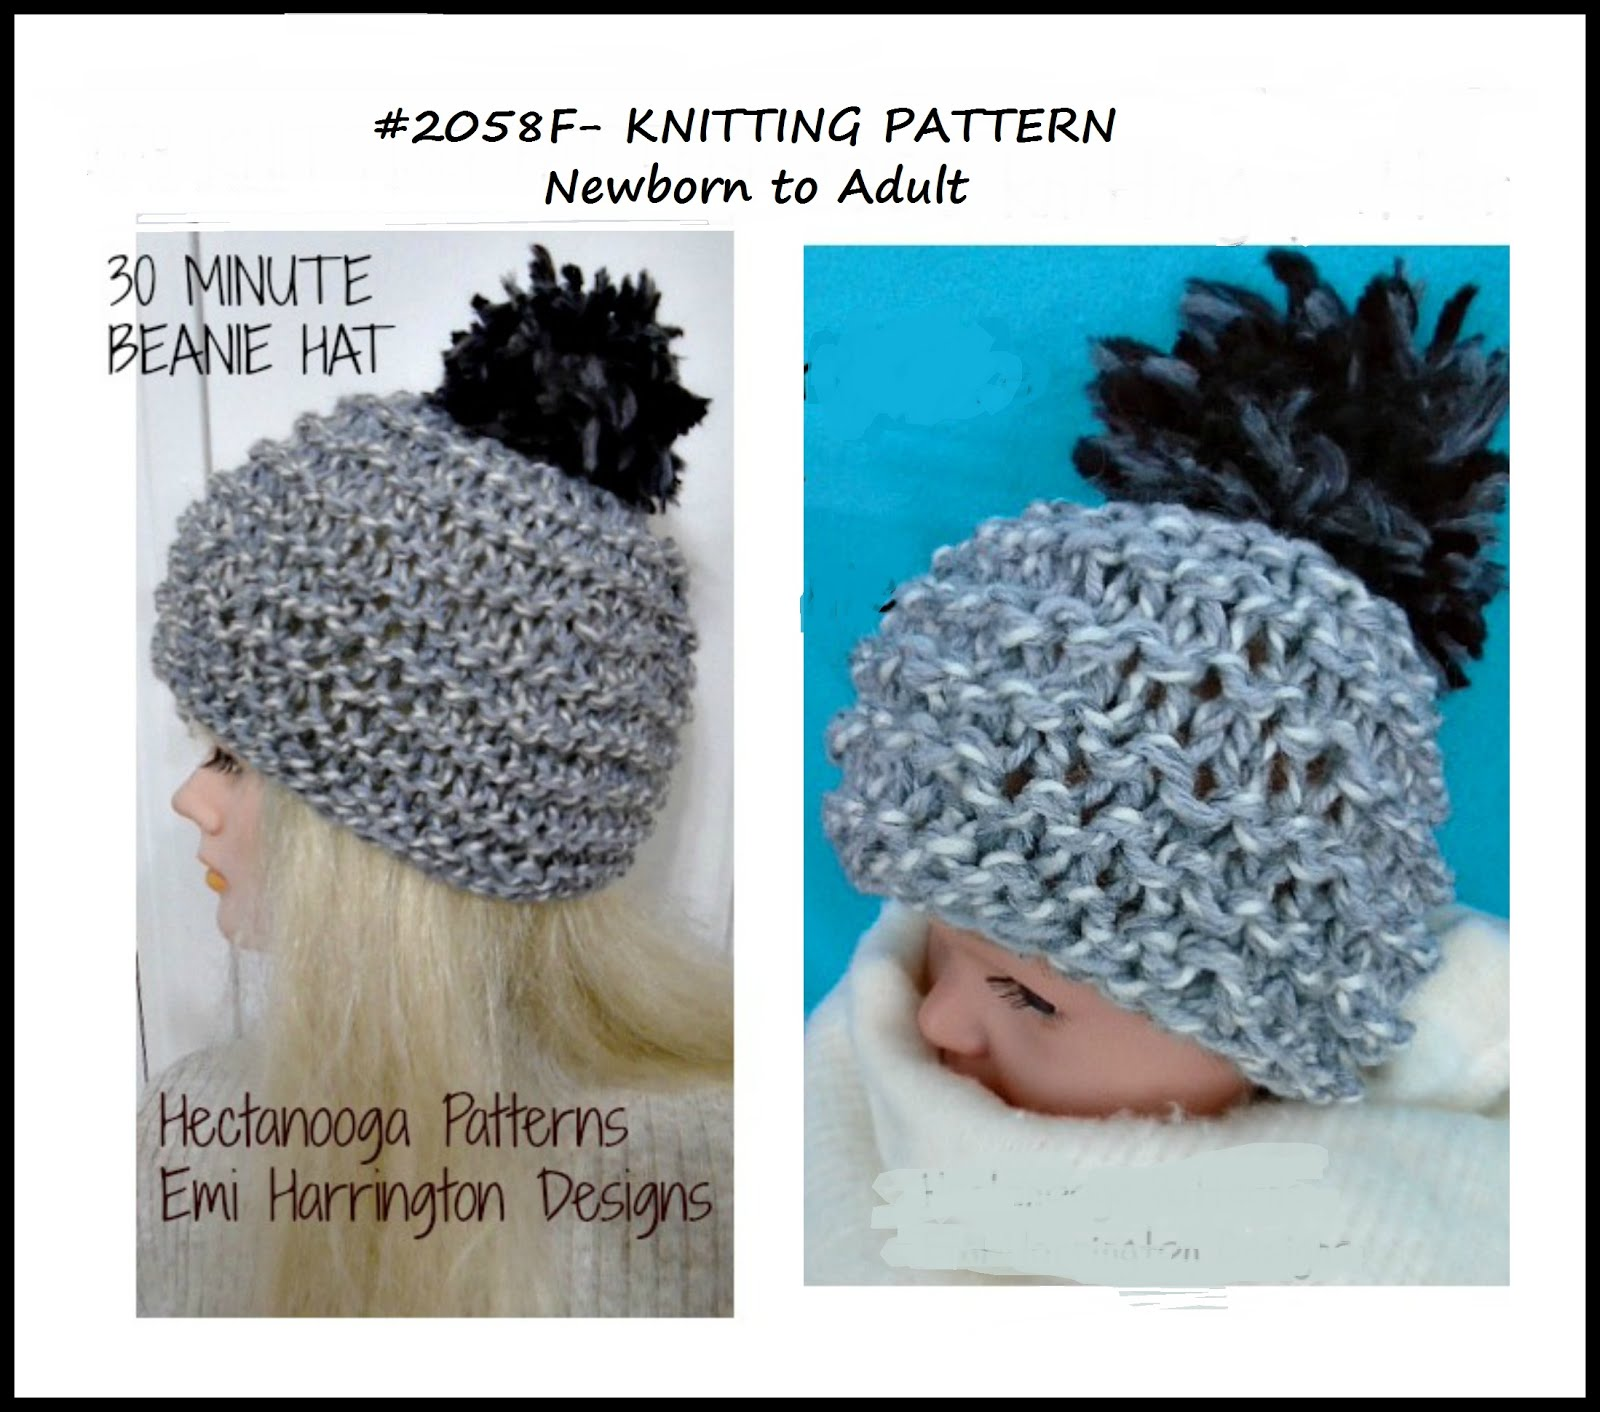 HECTANOOGA PATTERNS: FREE KNITTING PATTERN - 30 minute beanie hat ...